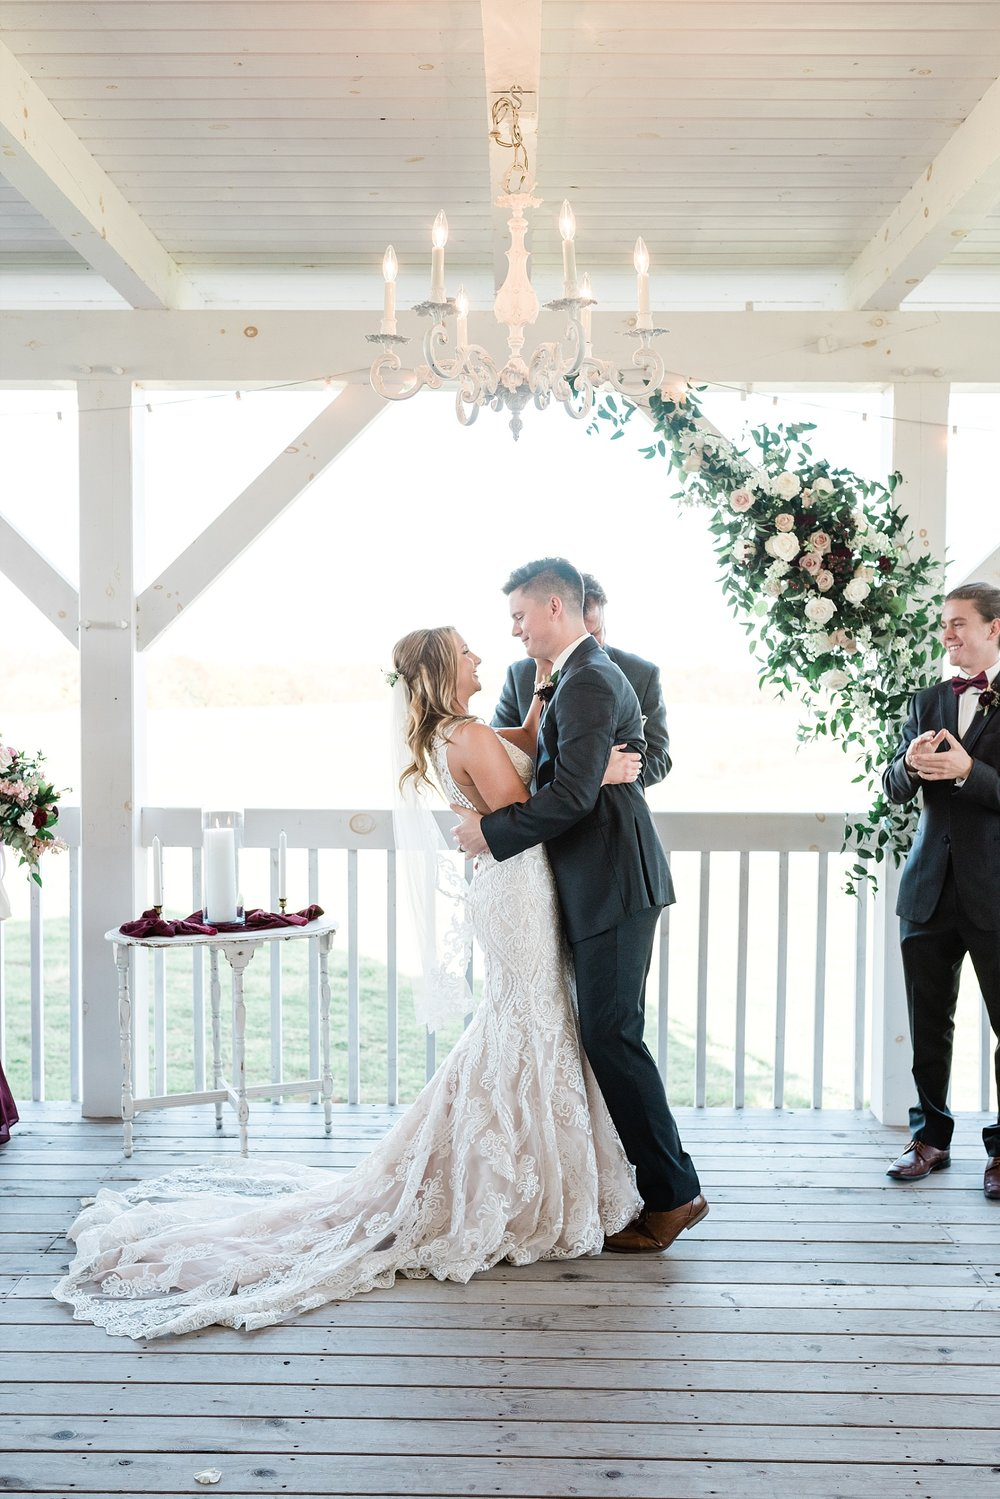 Golden Autumn Outdoor Wedding with Ivory, Bergundy, and Blush Color Palette at Blue Bell Farms  by Kelsi Kliethermes Photography_0084.jpg